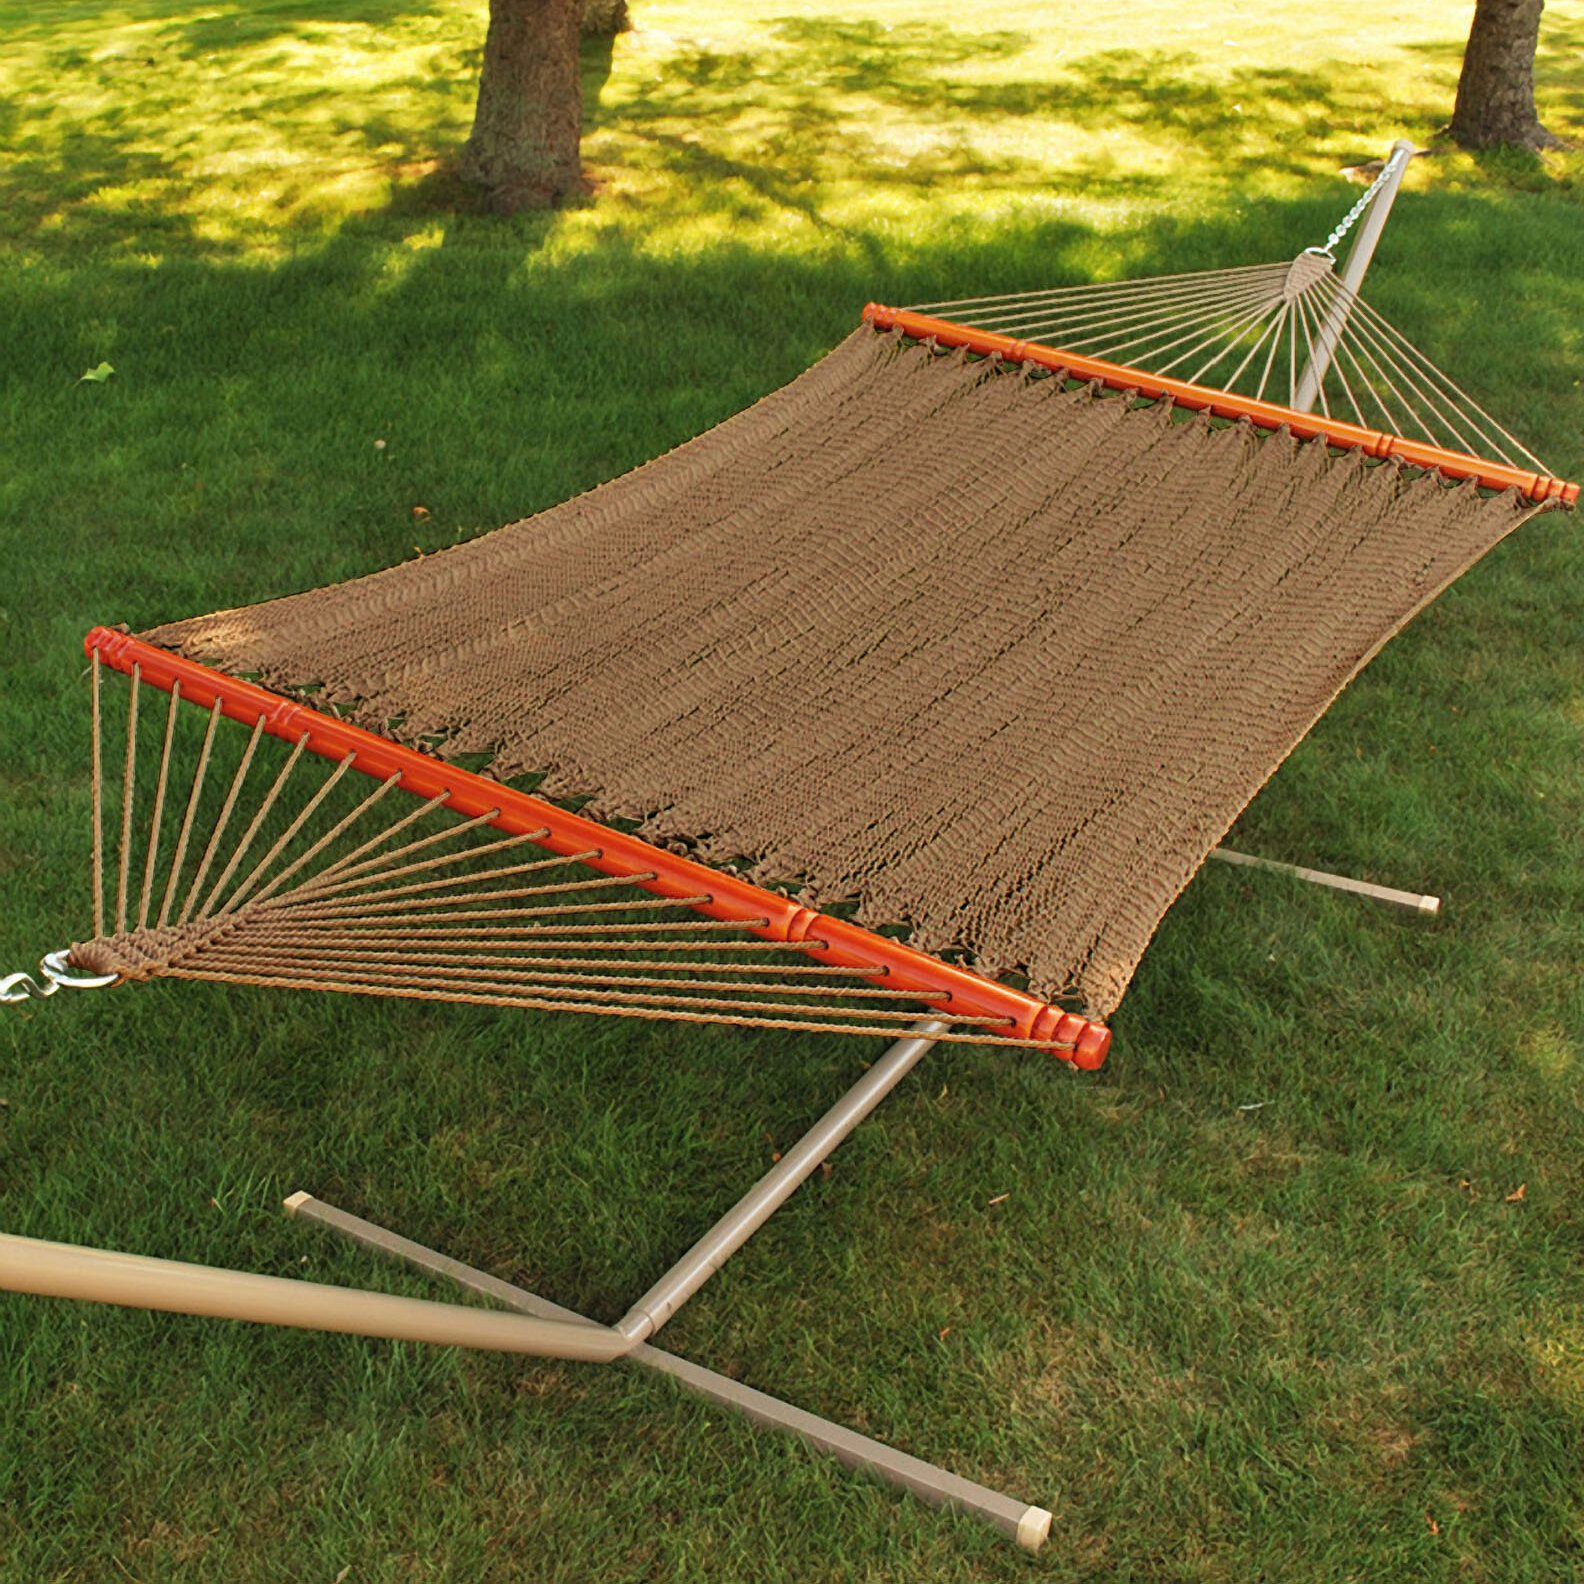 Algoma net company tight weave soft tan polyester rope for Rope hammock plans